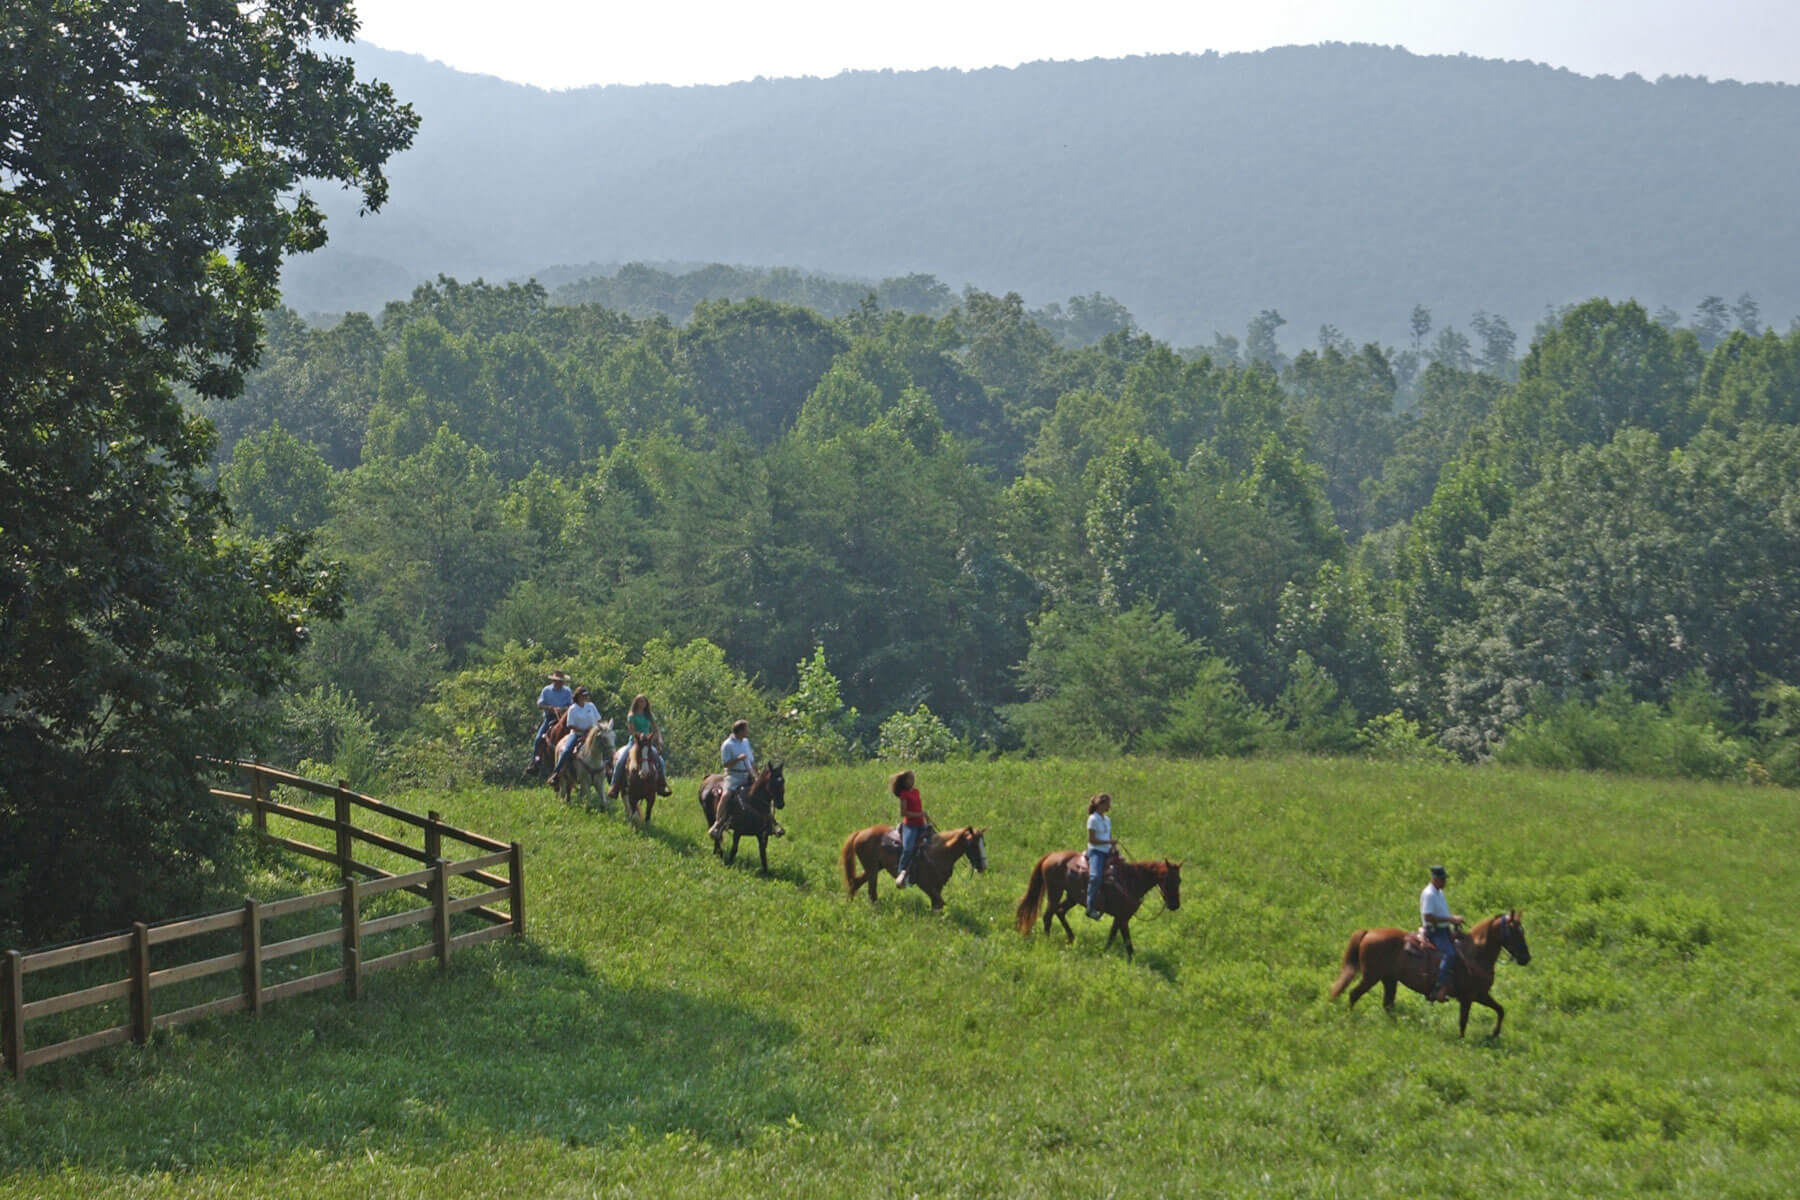 sbrasstown valley stables horseback riding group